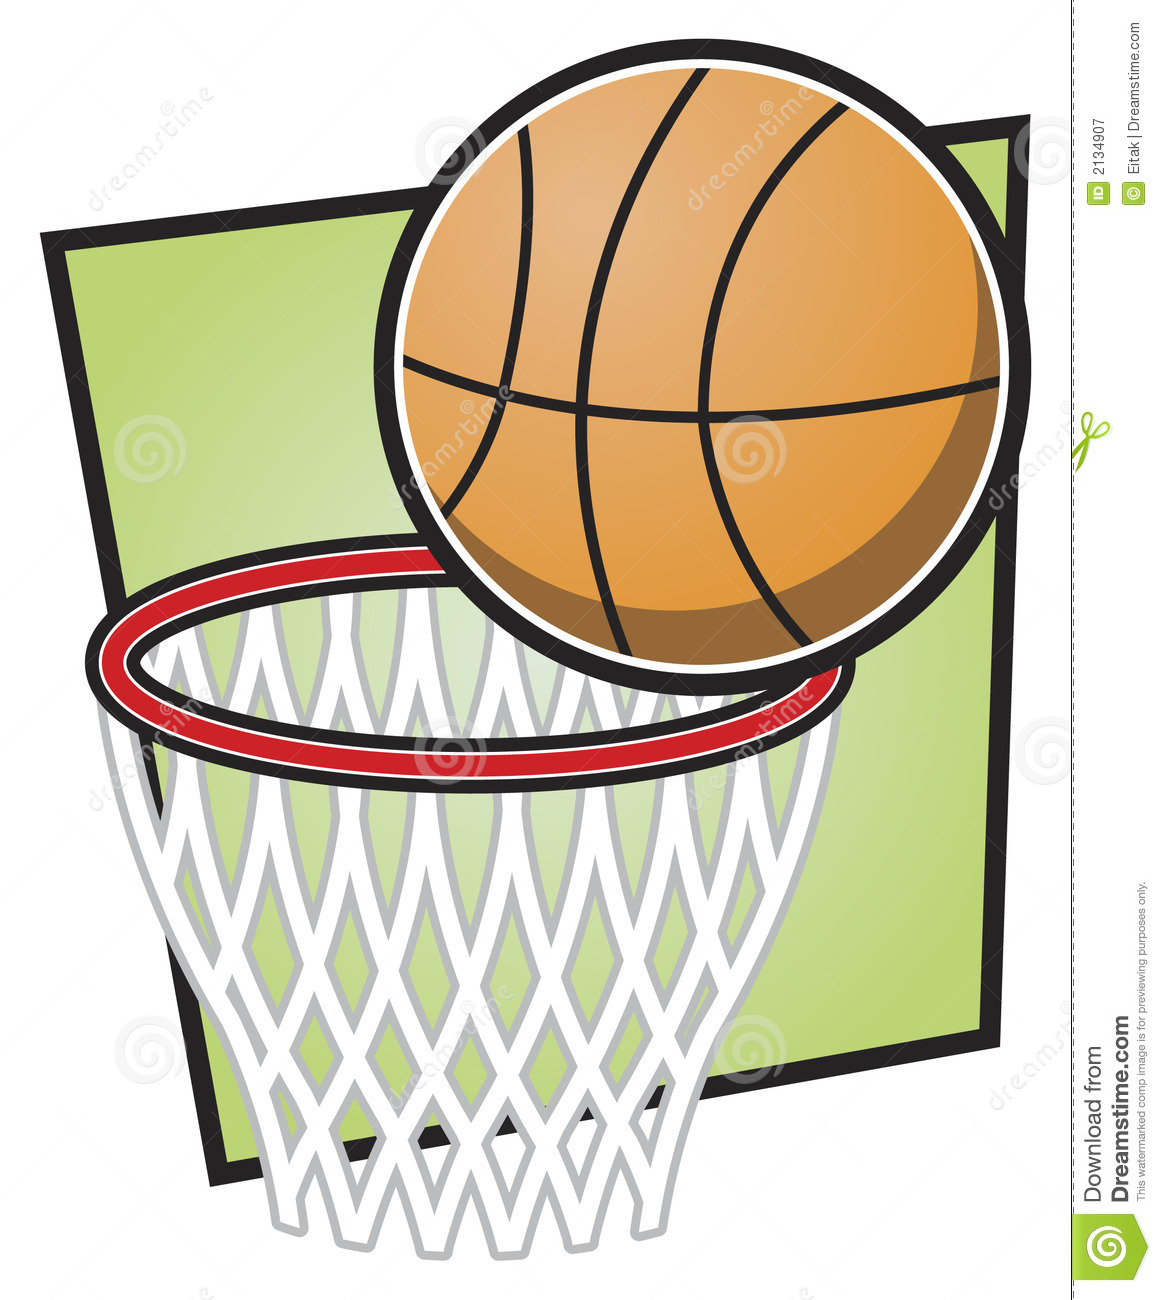 1161x1300 Basketball Hoop Clip Art